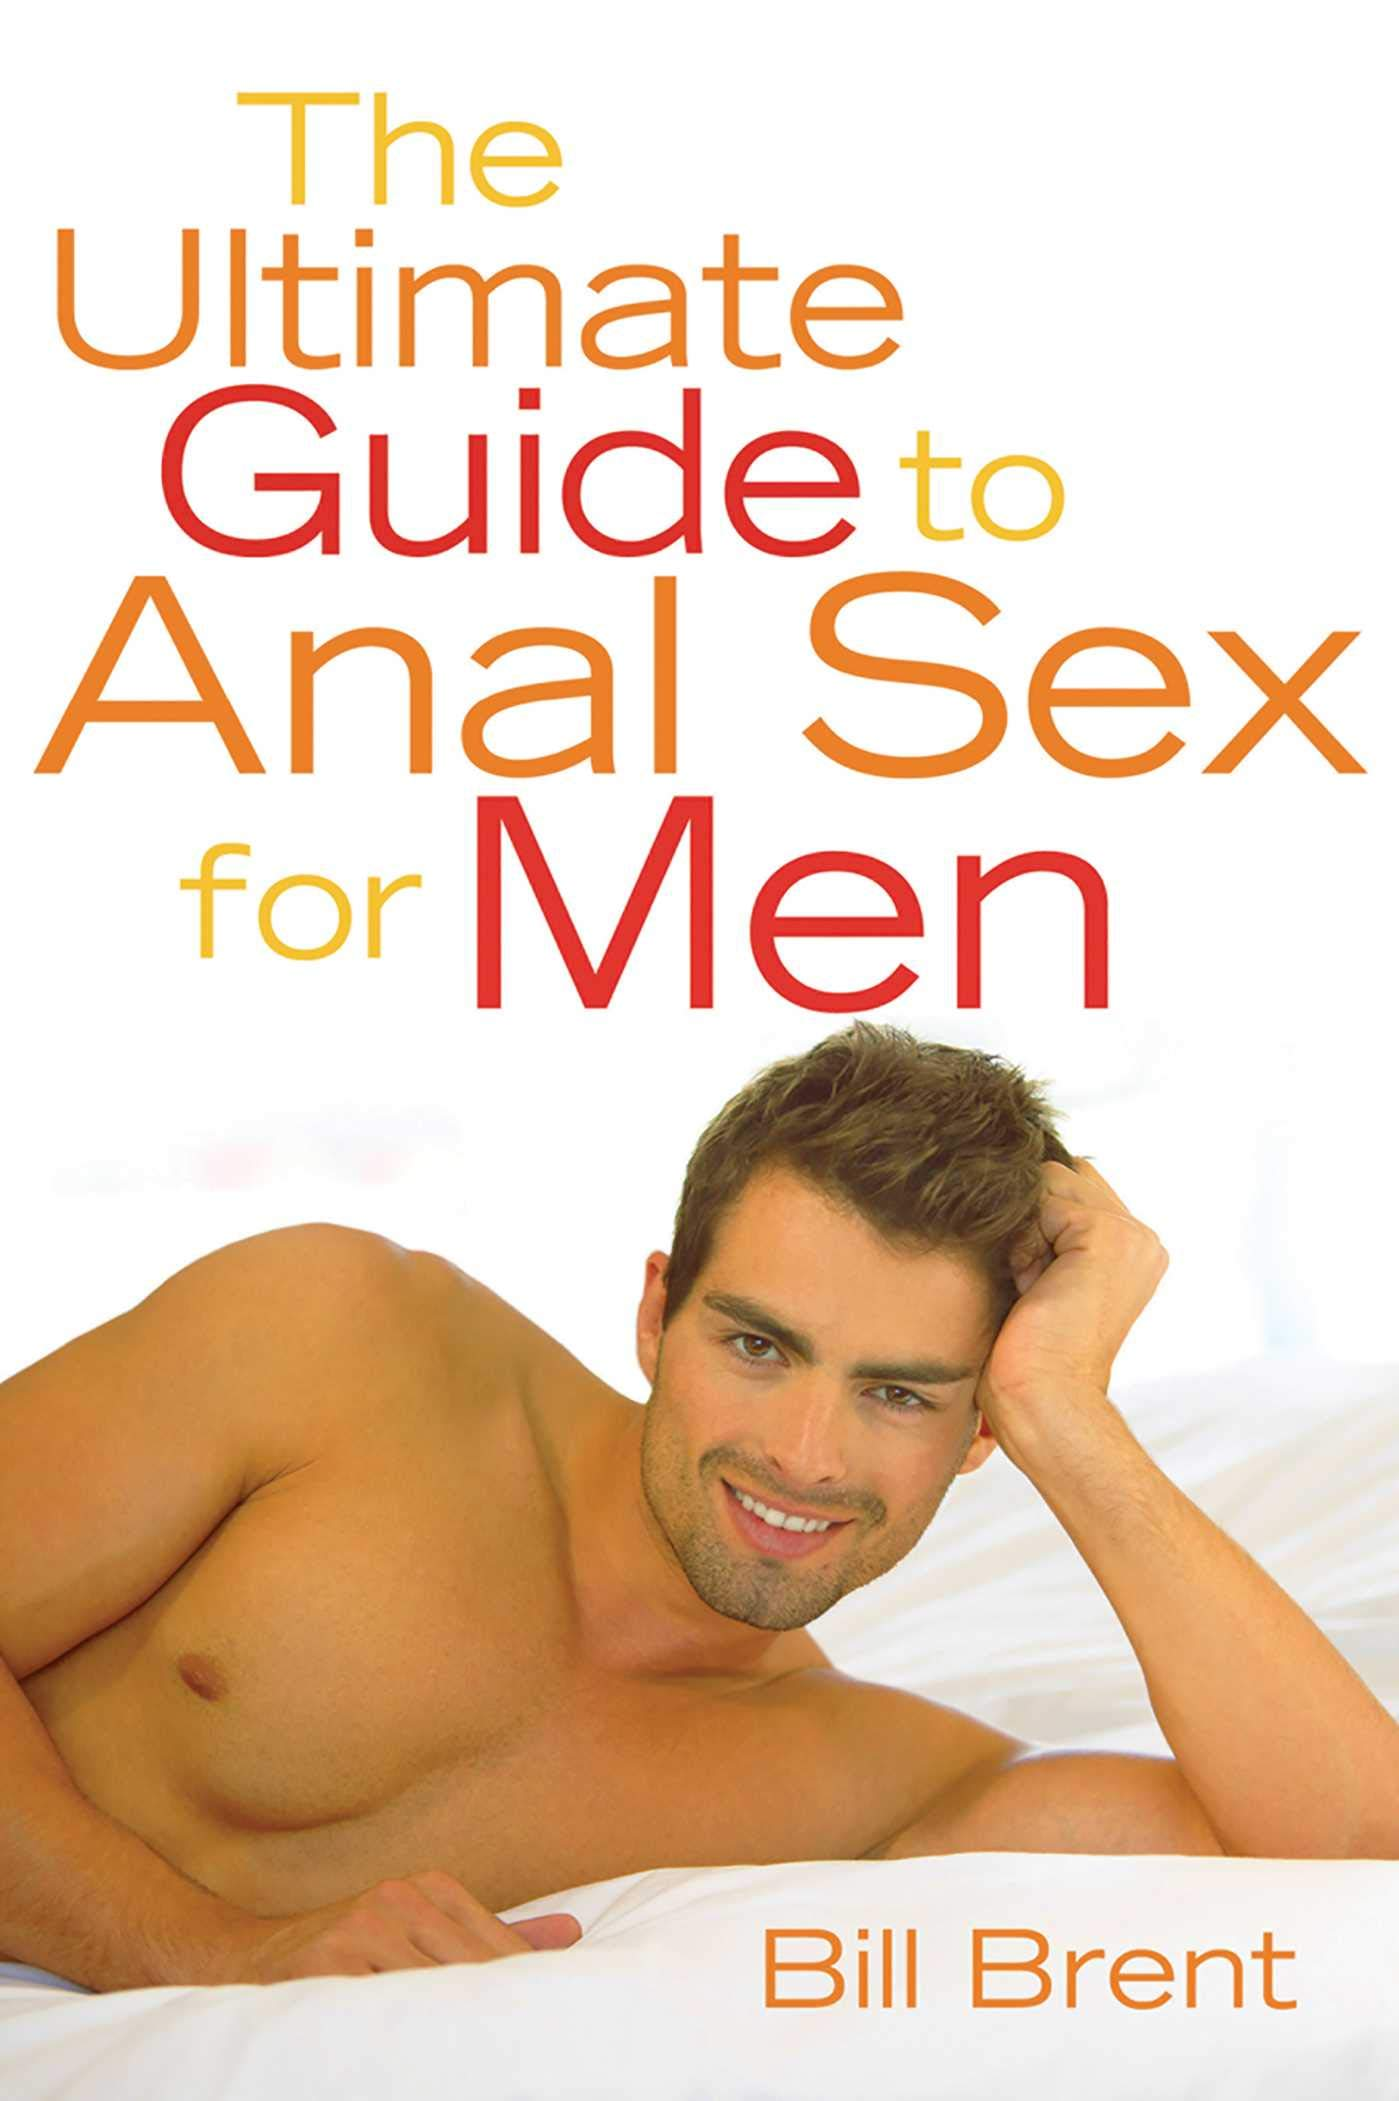 How to have anal sex for men